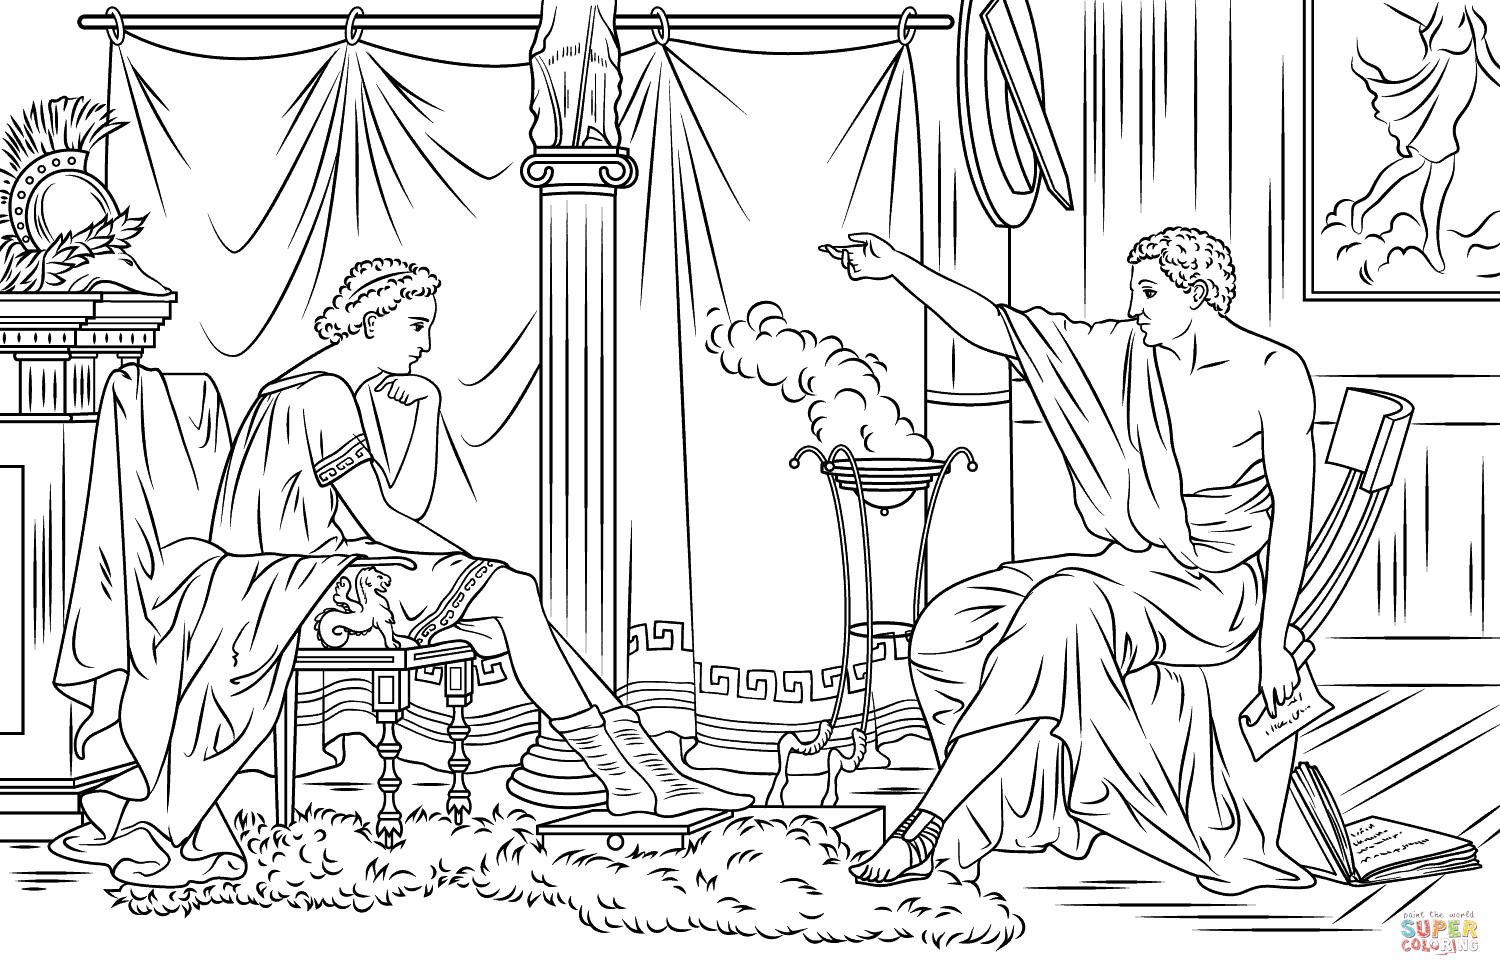 Alexander The Great And Aristotle Super Coloring Coloring Pages Cool Coloring Pages Alexander The Great